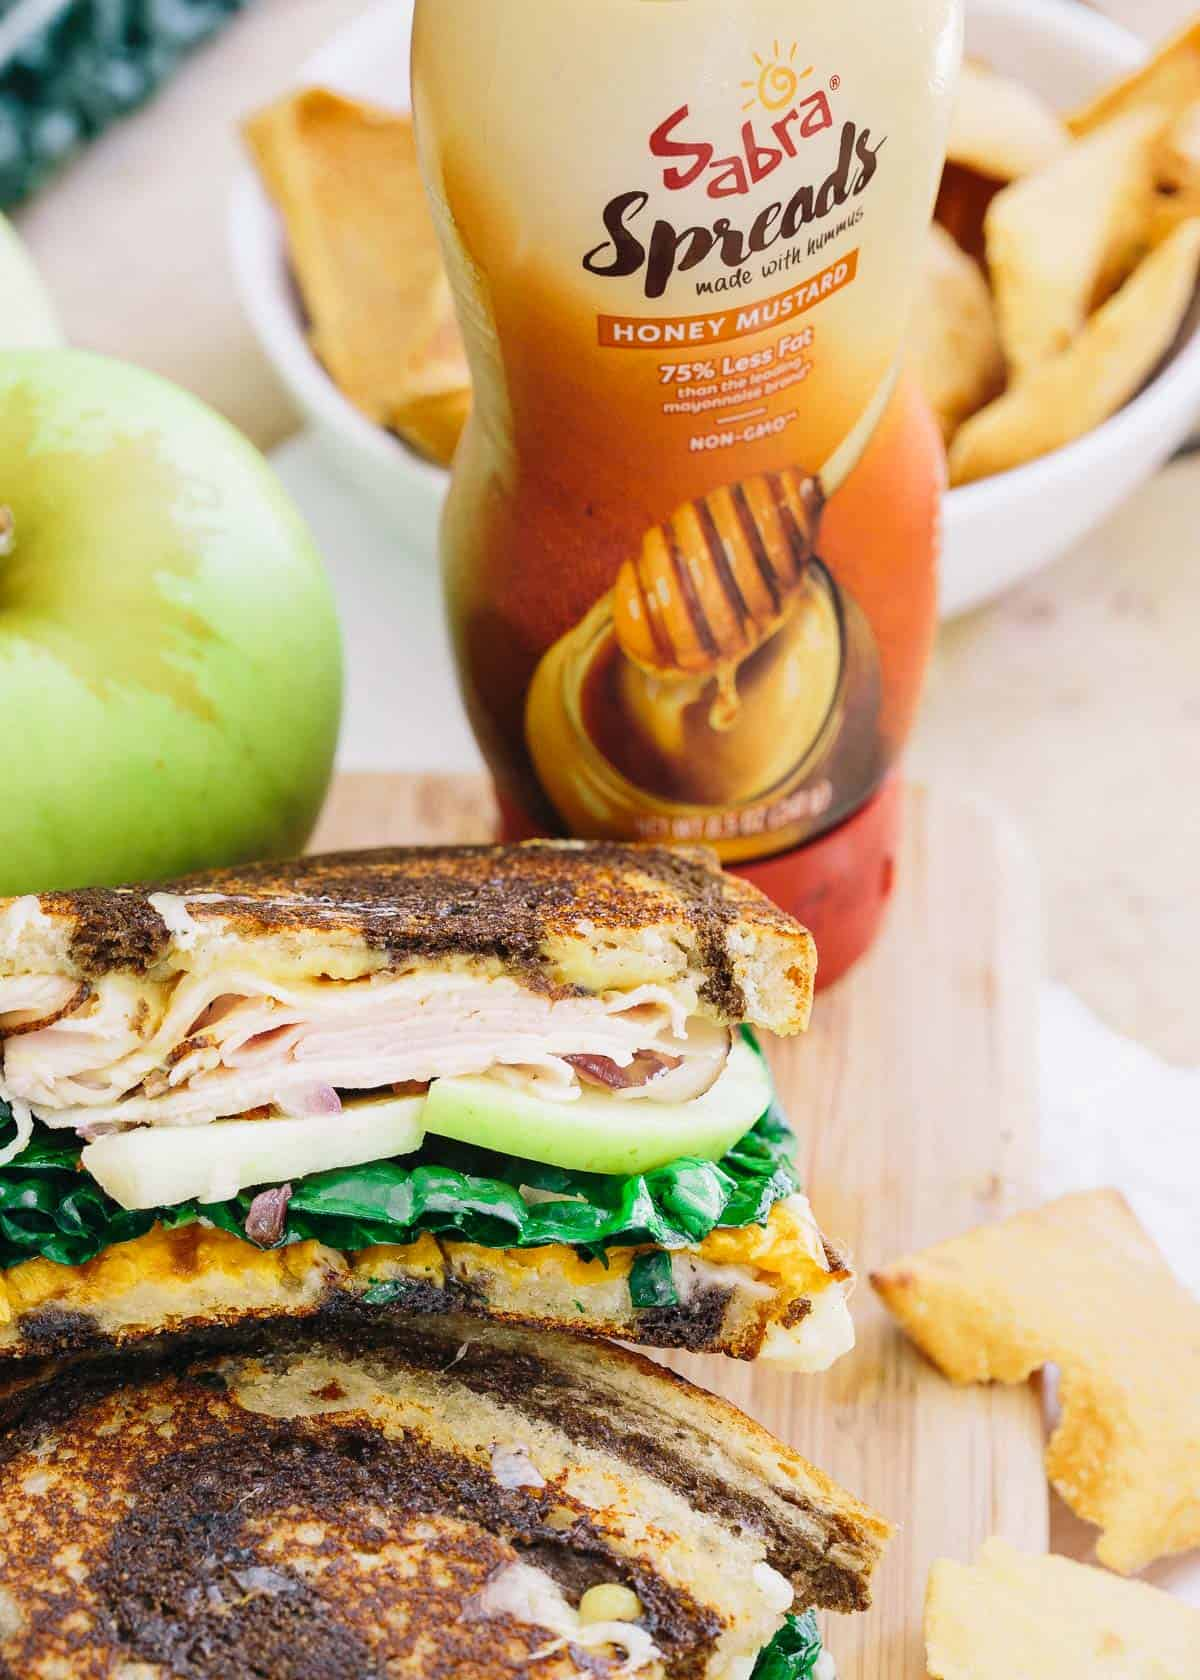 This roasted sweet potato apple ham sandwich has a tangy sweet honey mustard spread, melted cheddar cheese and caramelized red onions all piled high for one delicious bite!